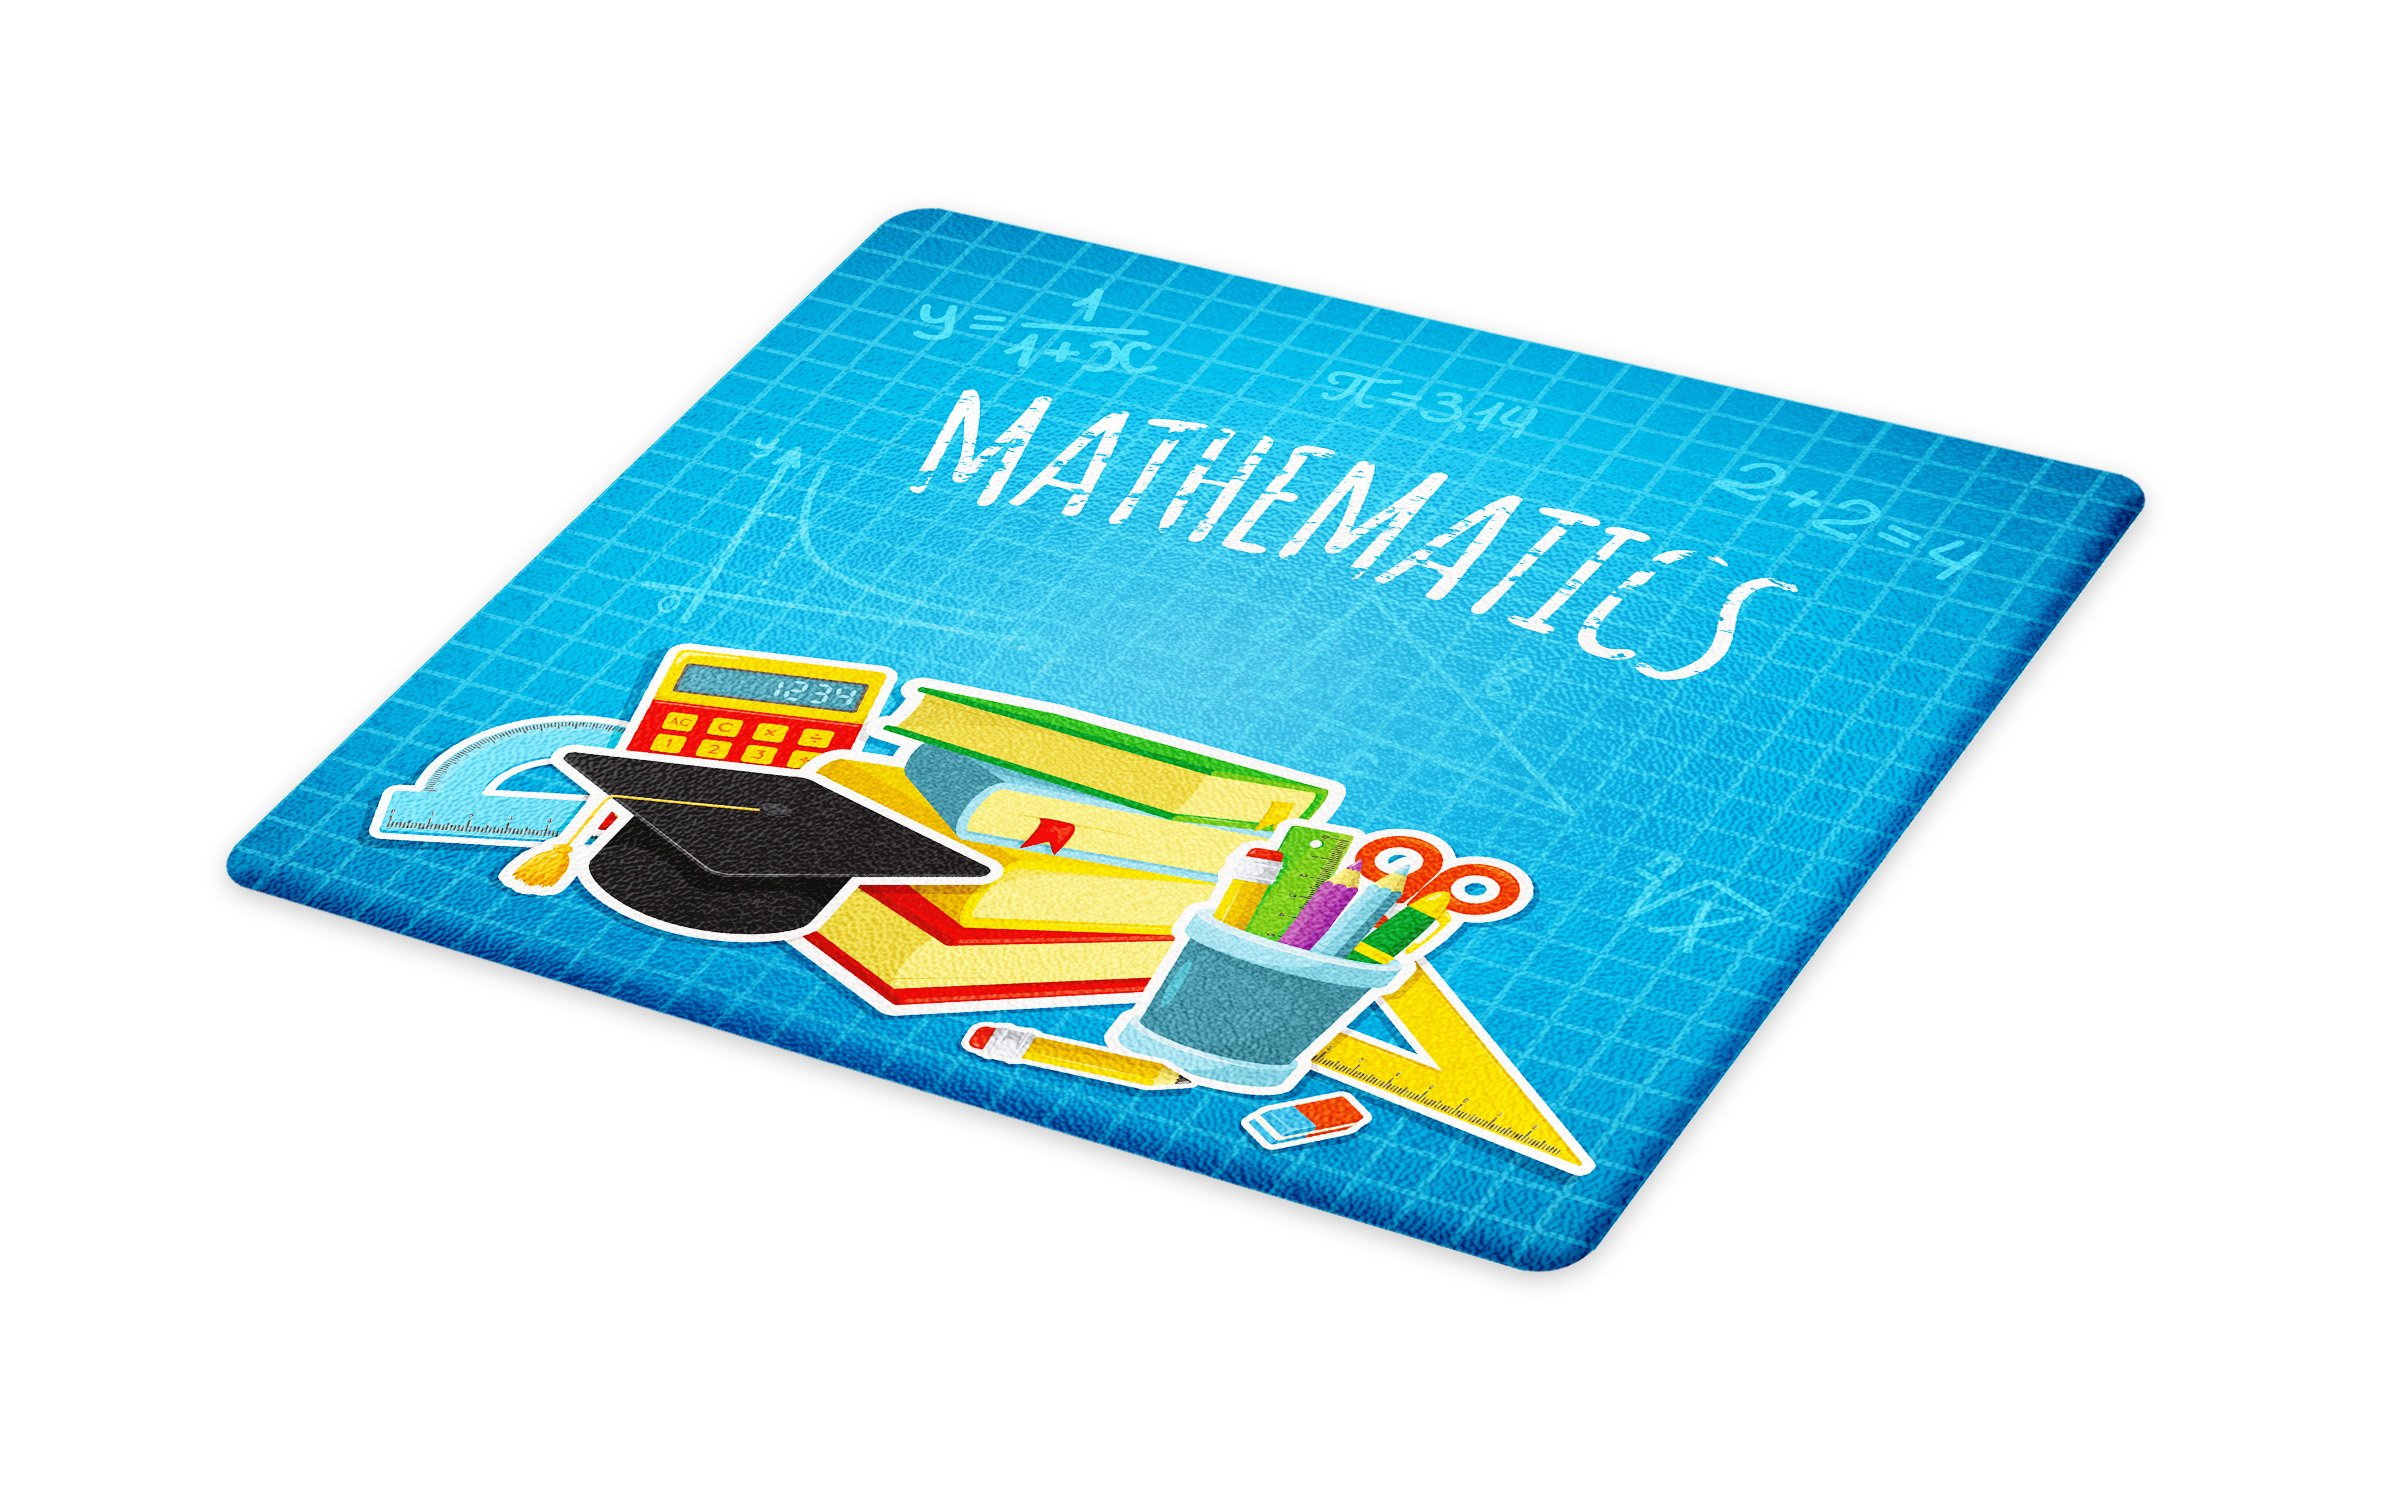 Lunarable Mathematics Classroom Cutting Board, Education Science Concept School and College Supplies Set Books Cap, Decorative Tempered Glass Cutting and Serving Board, Large Size, Multicolor